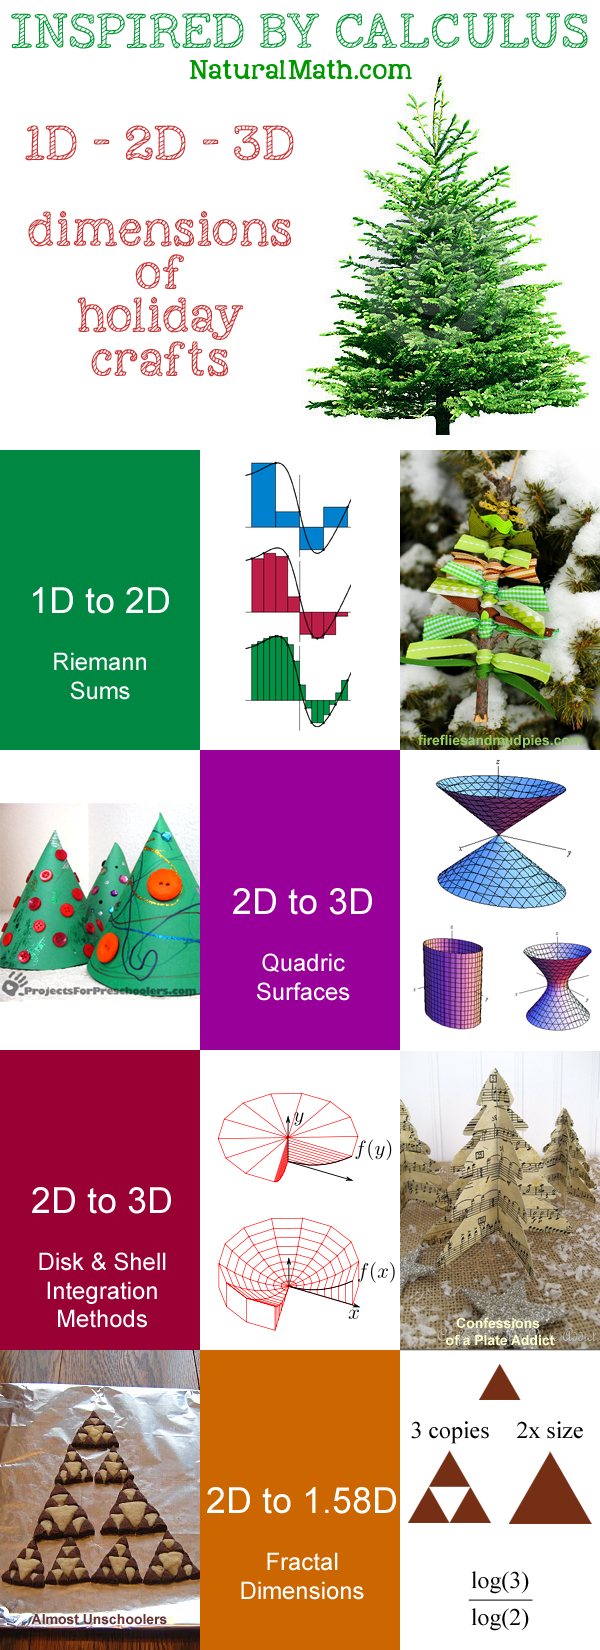 1D2D3D NaturalMath holidays